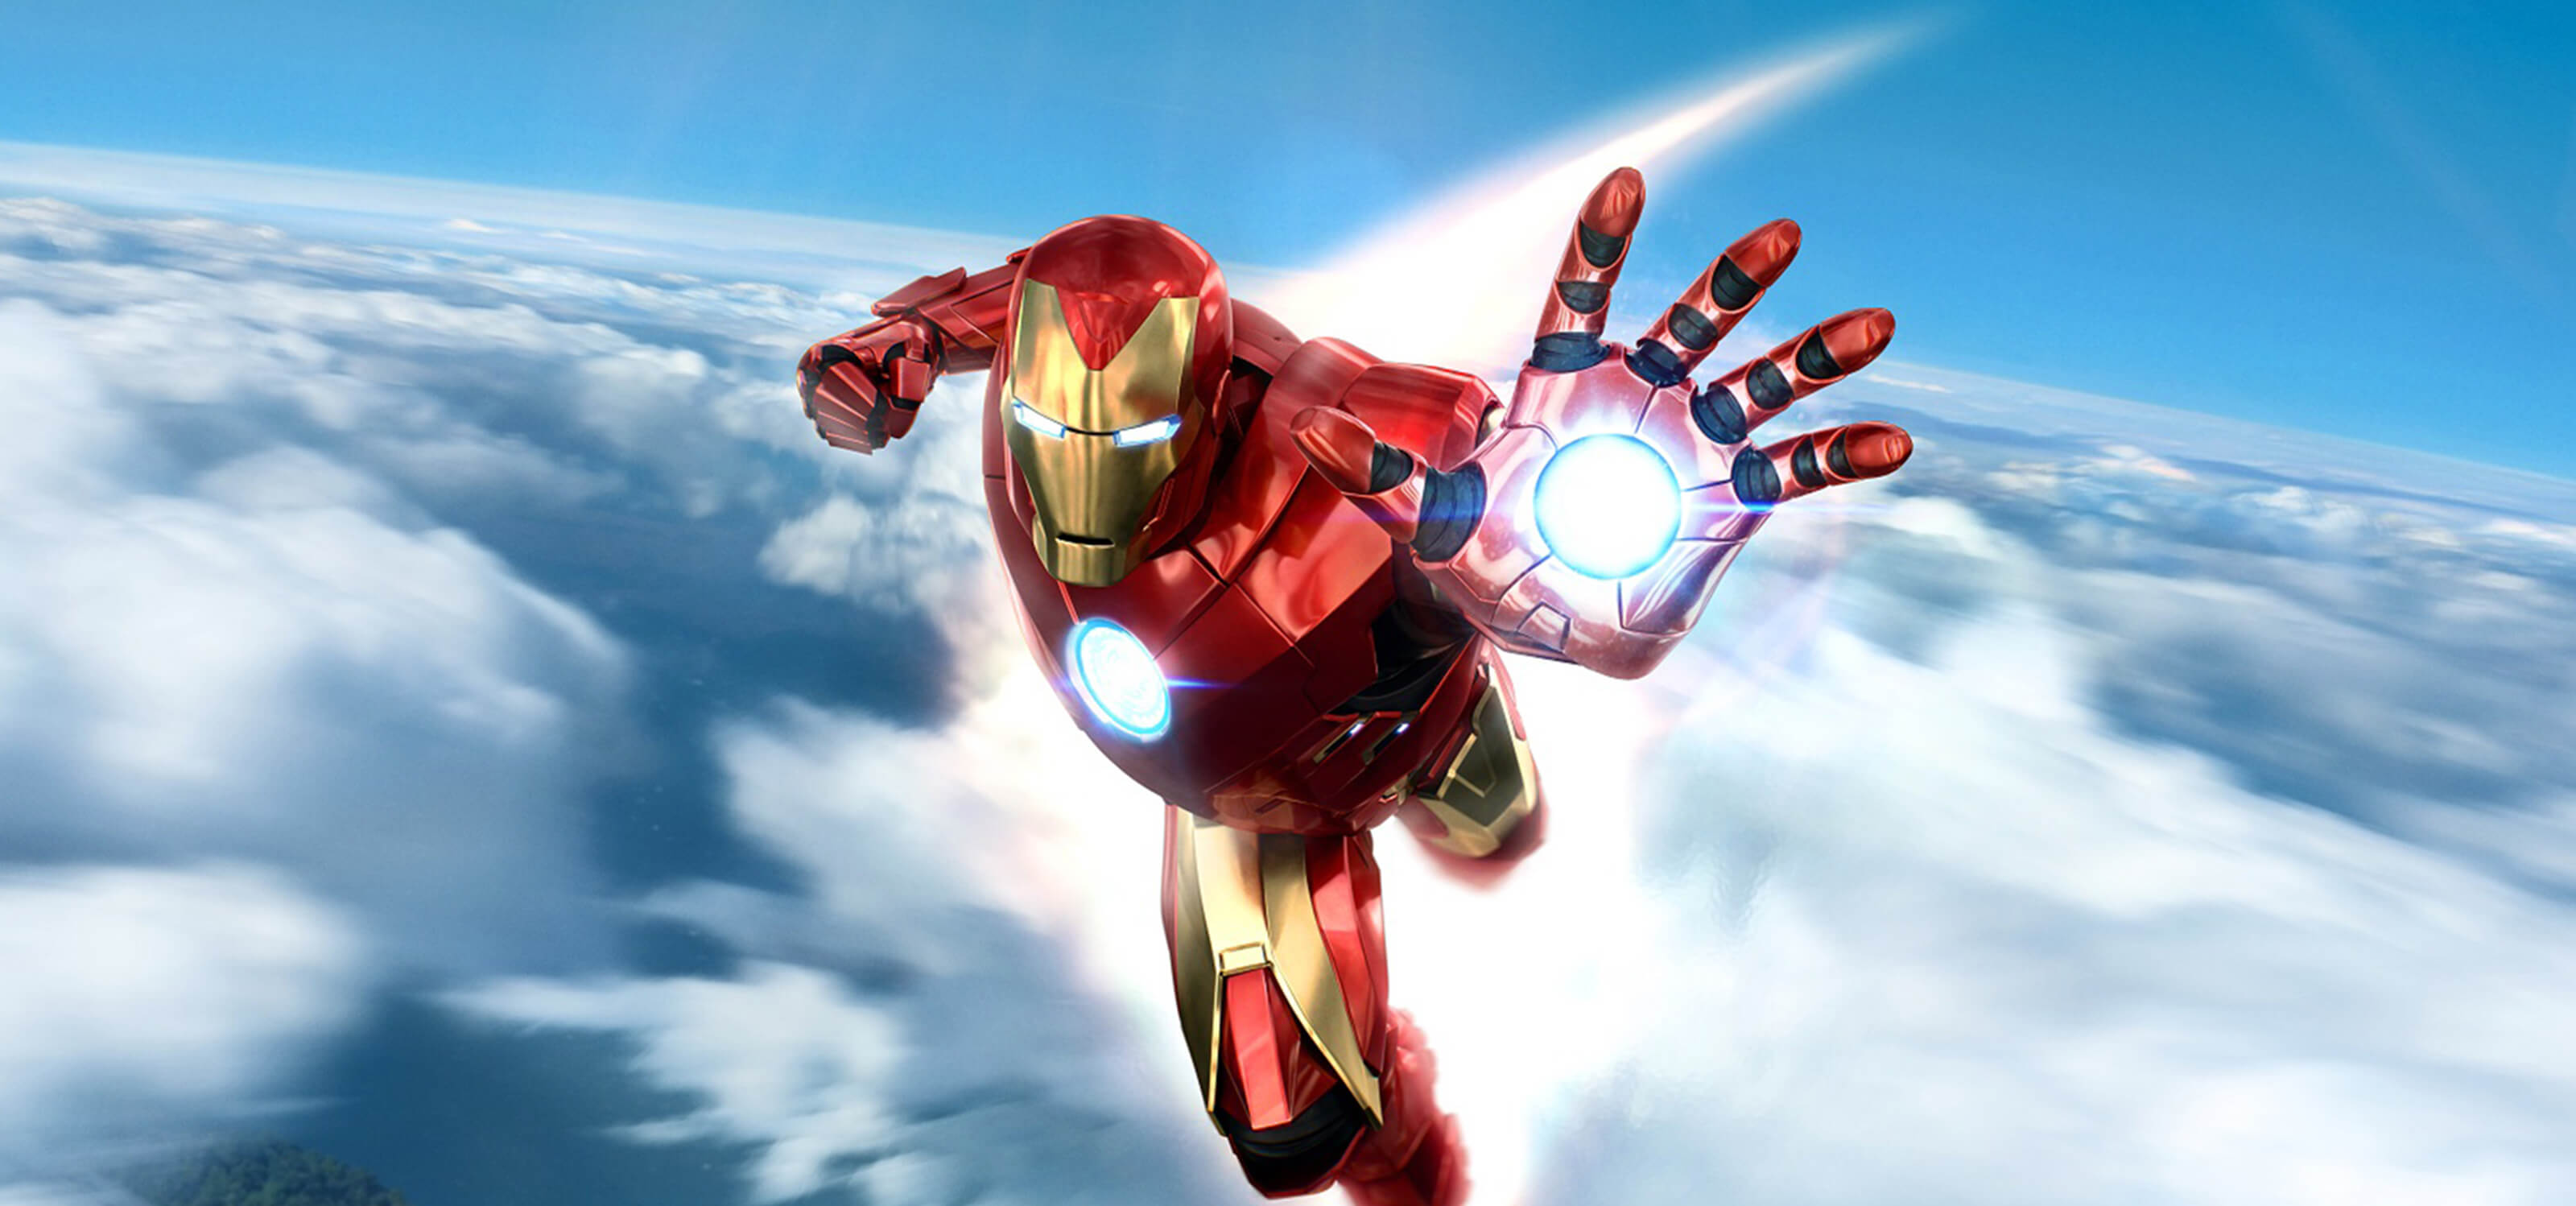 Iron Man flies through the sky with his fist at the ready.